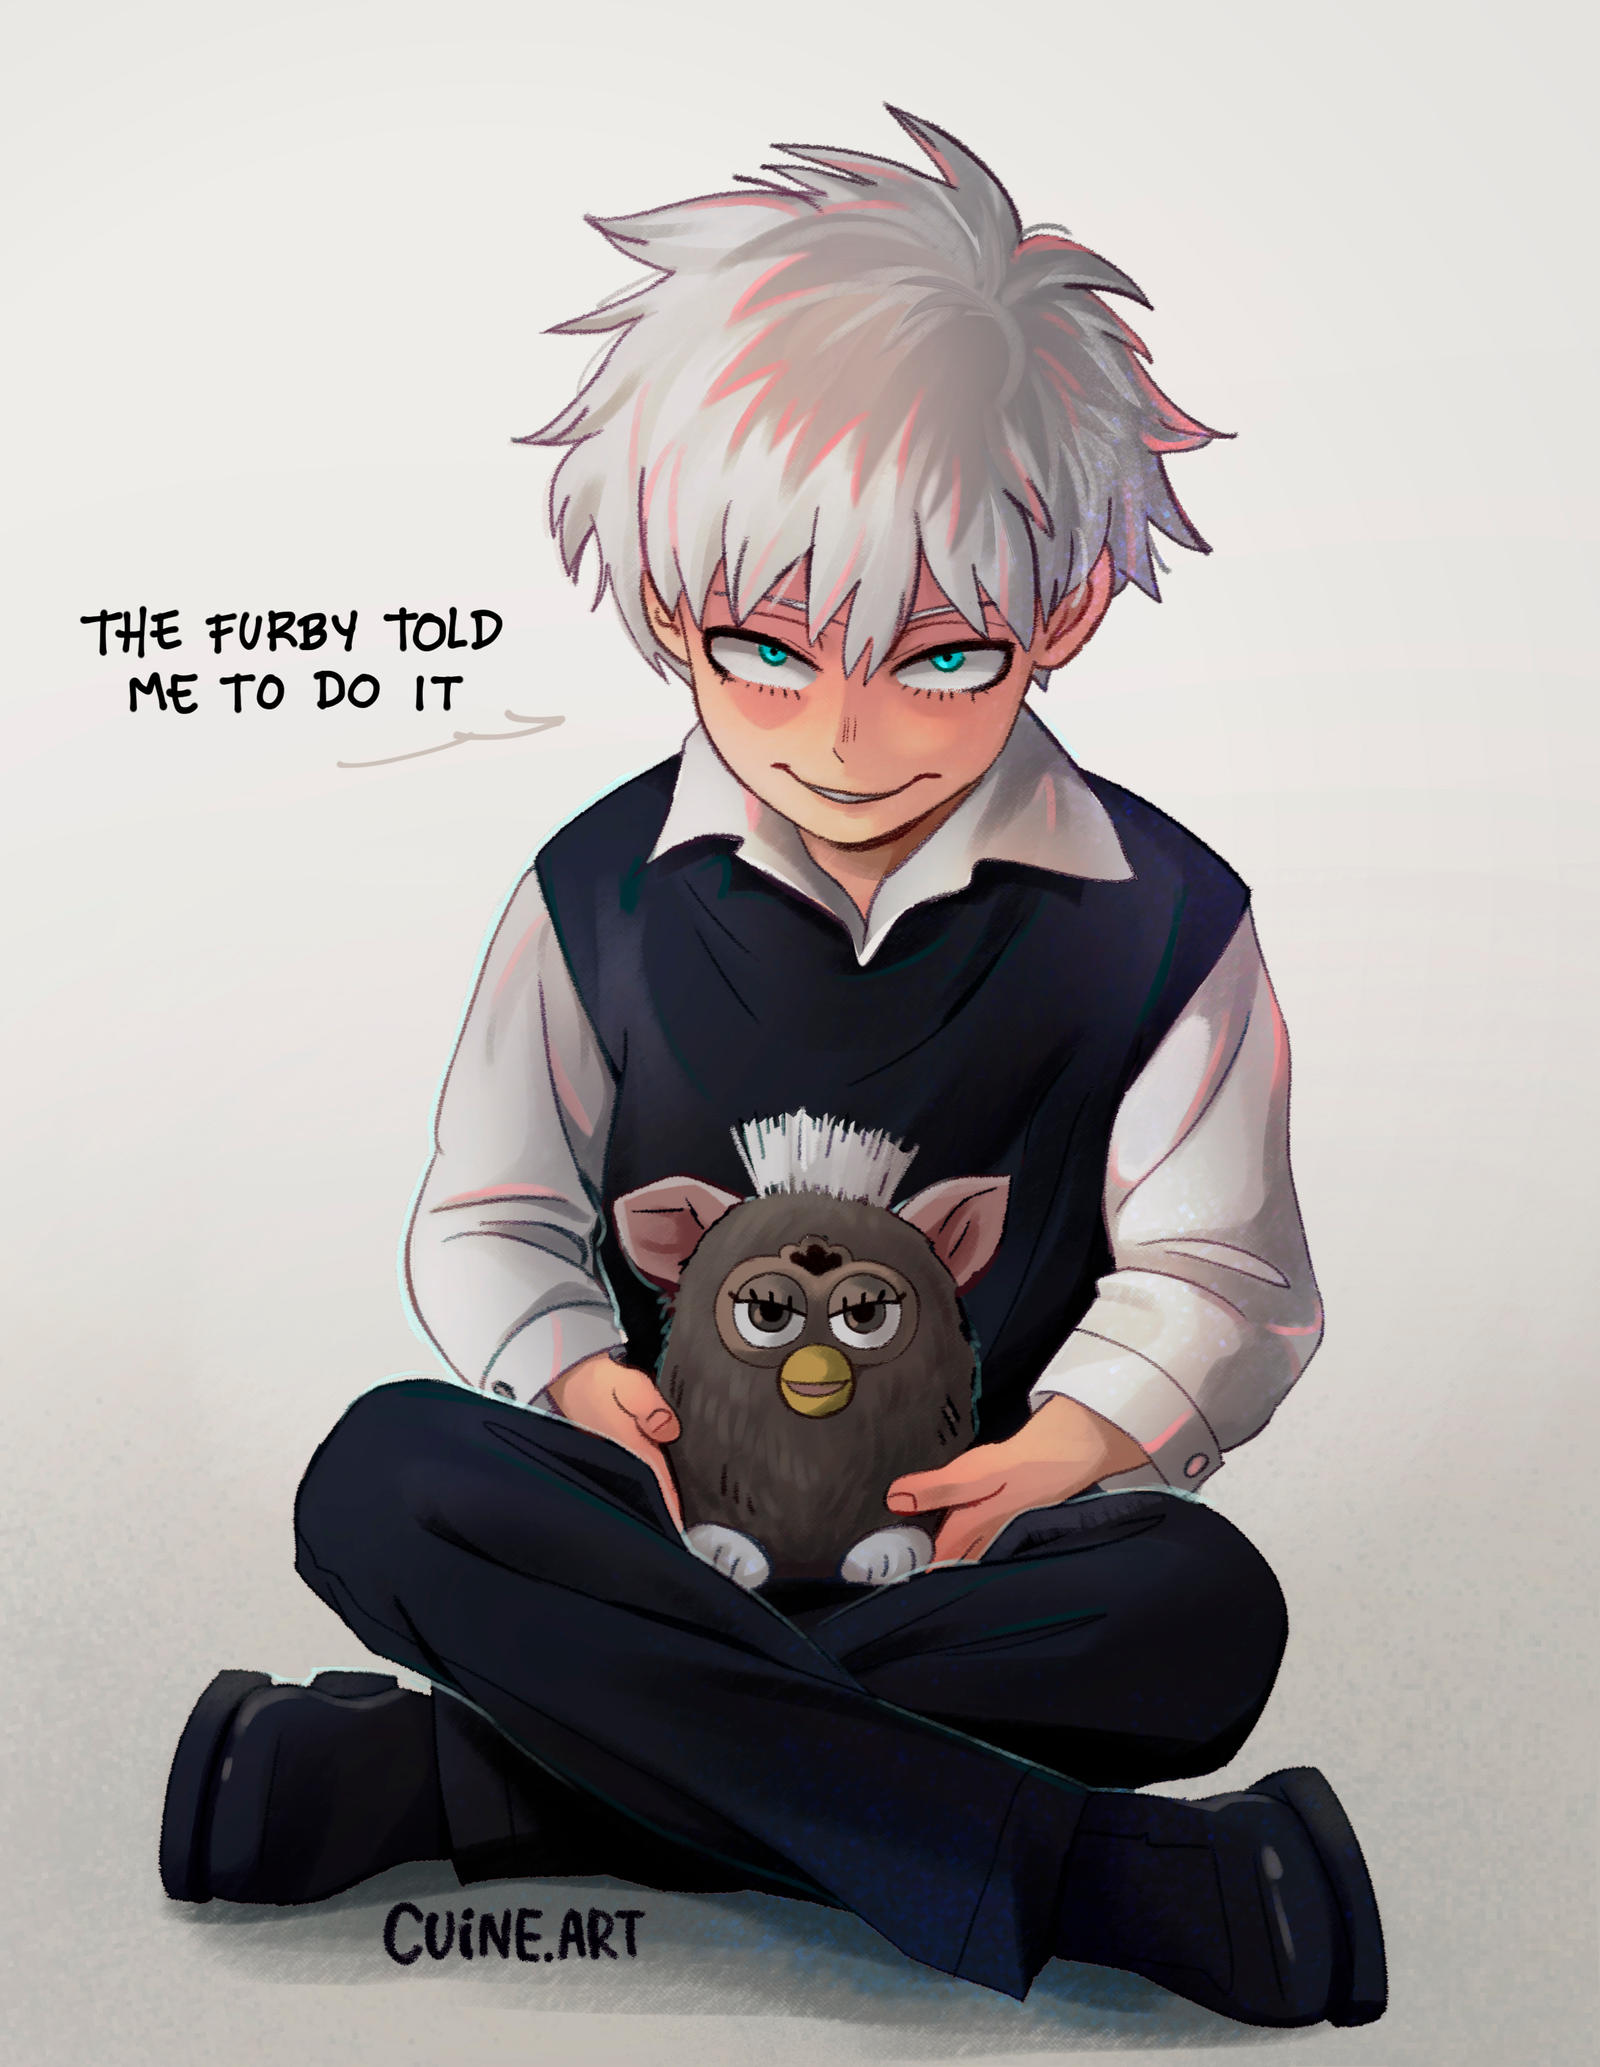 Touya and his friend